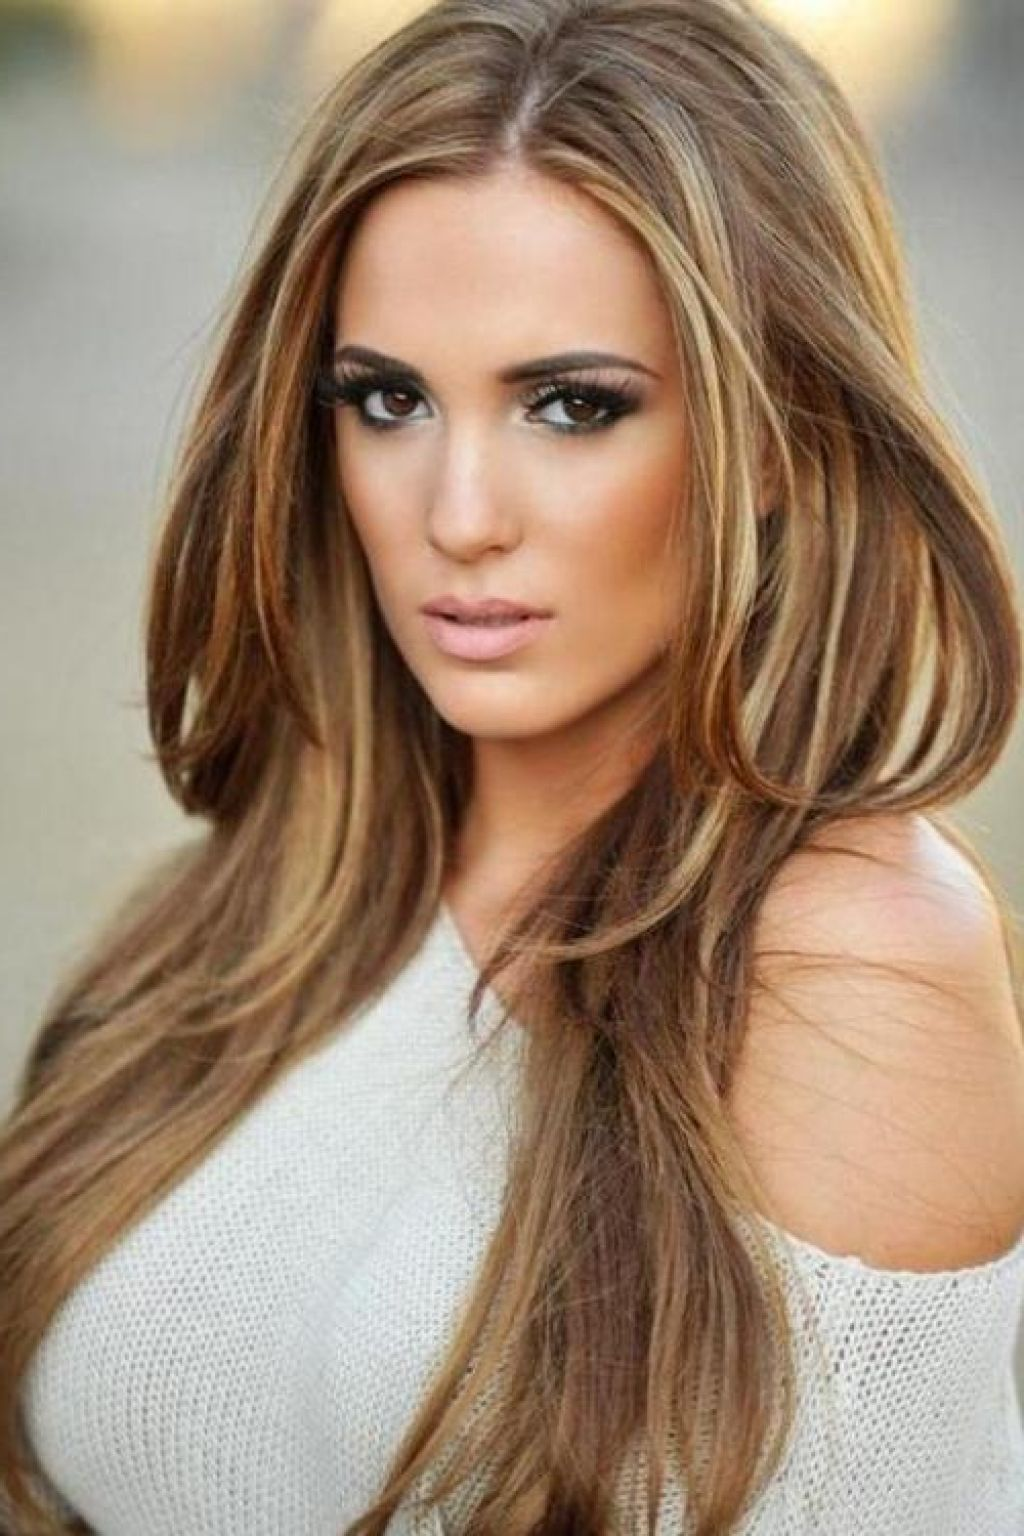 Best hair color for pale skin with warm undertones and hazel eyes a unique and pretty touch of hairstyles for fall 2014 that will make you more confident also pretty light brown hair color with blonde highlights pmusecretfo Image collections